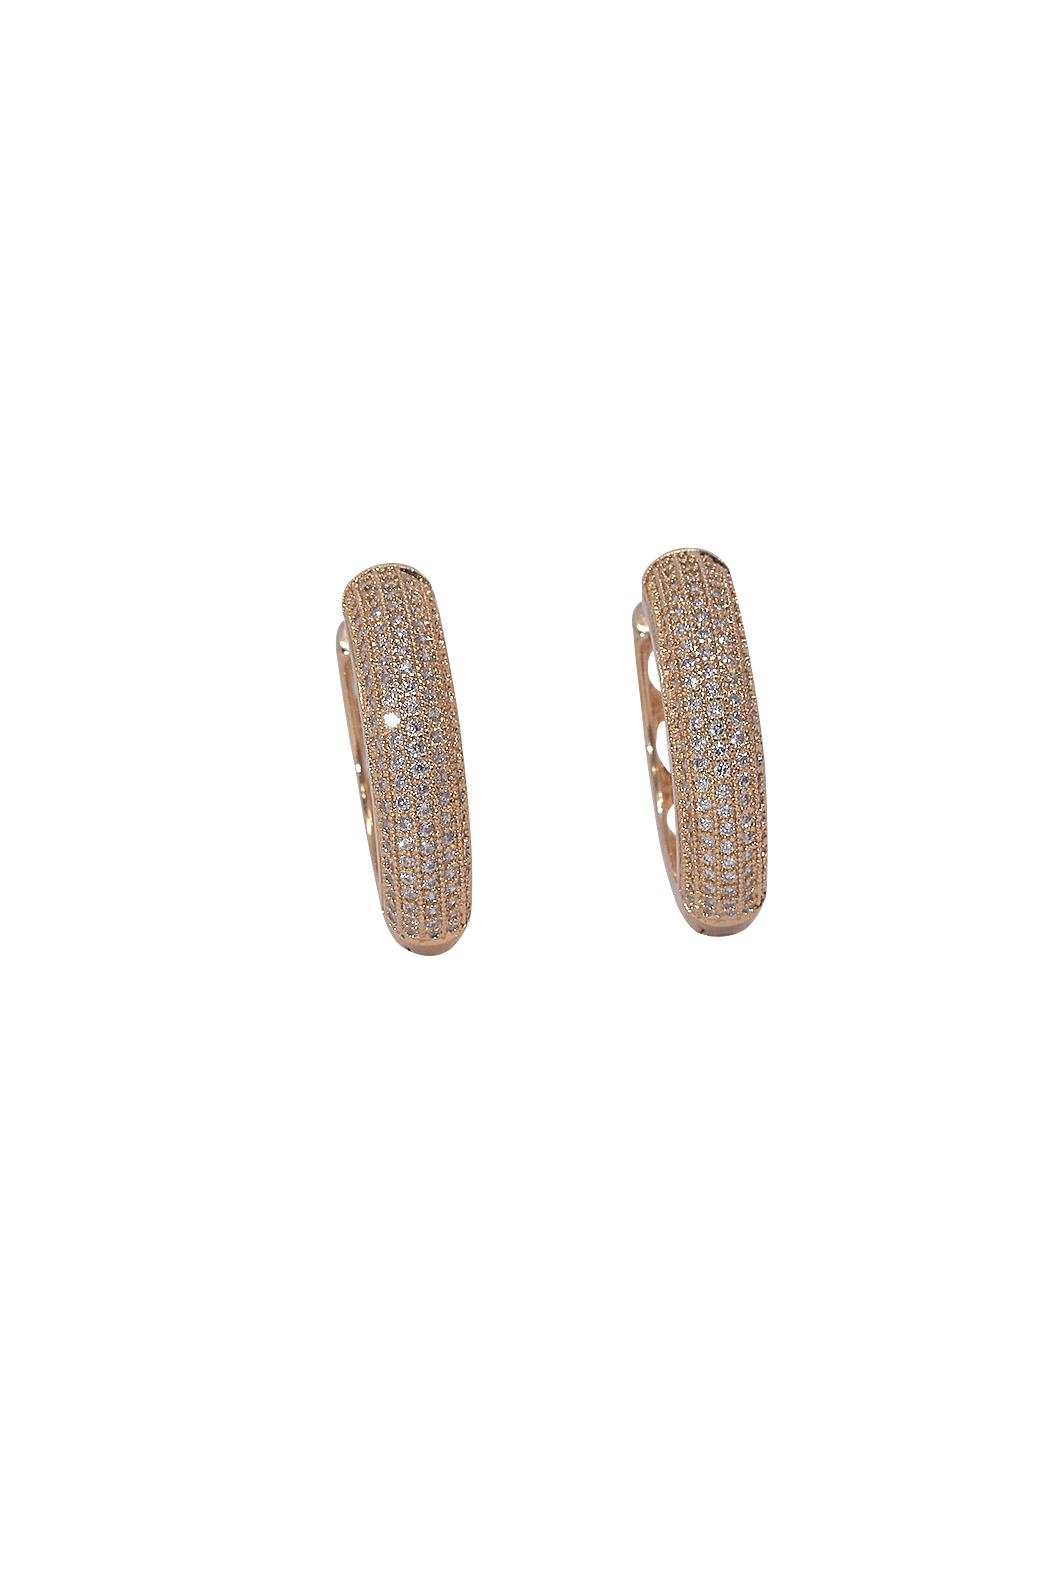 TINK TINK Circular Gold Plated Earrings - Main Image